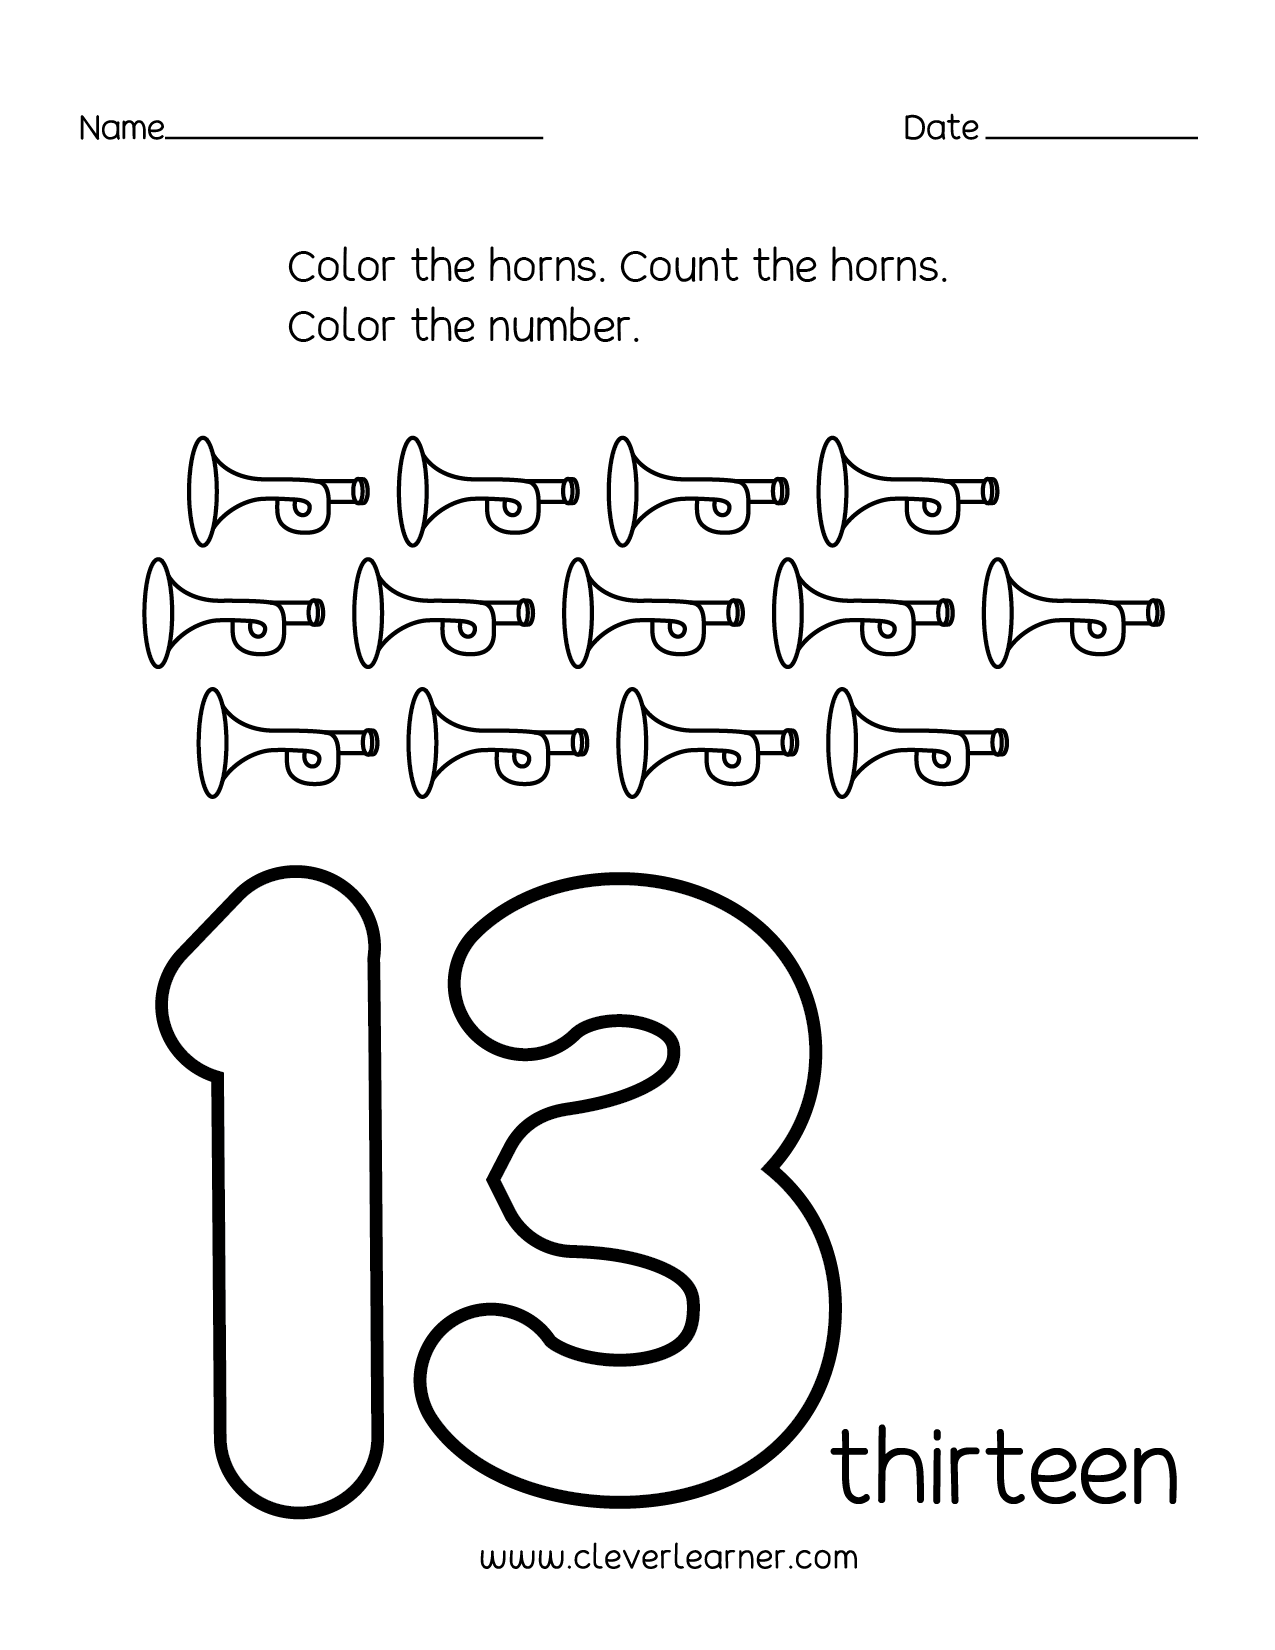 Number 13 Writing Counting And Identification Printable Worksheets For Children